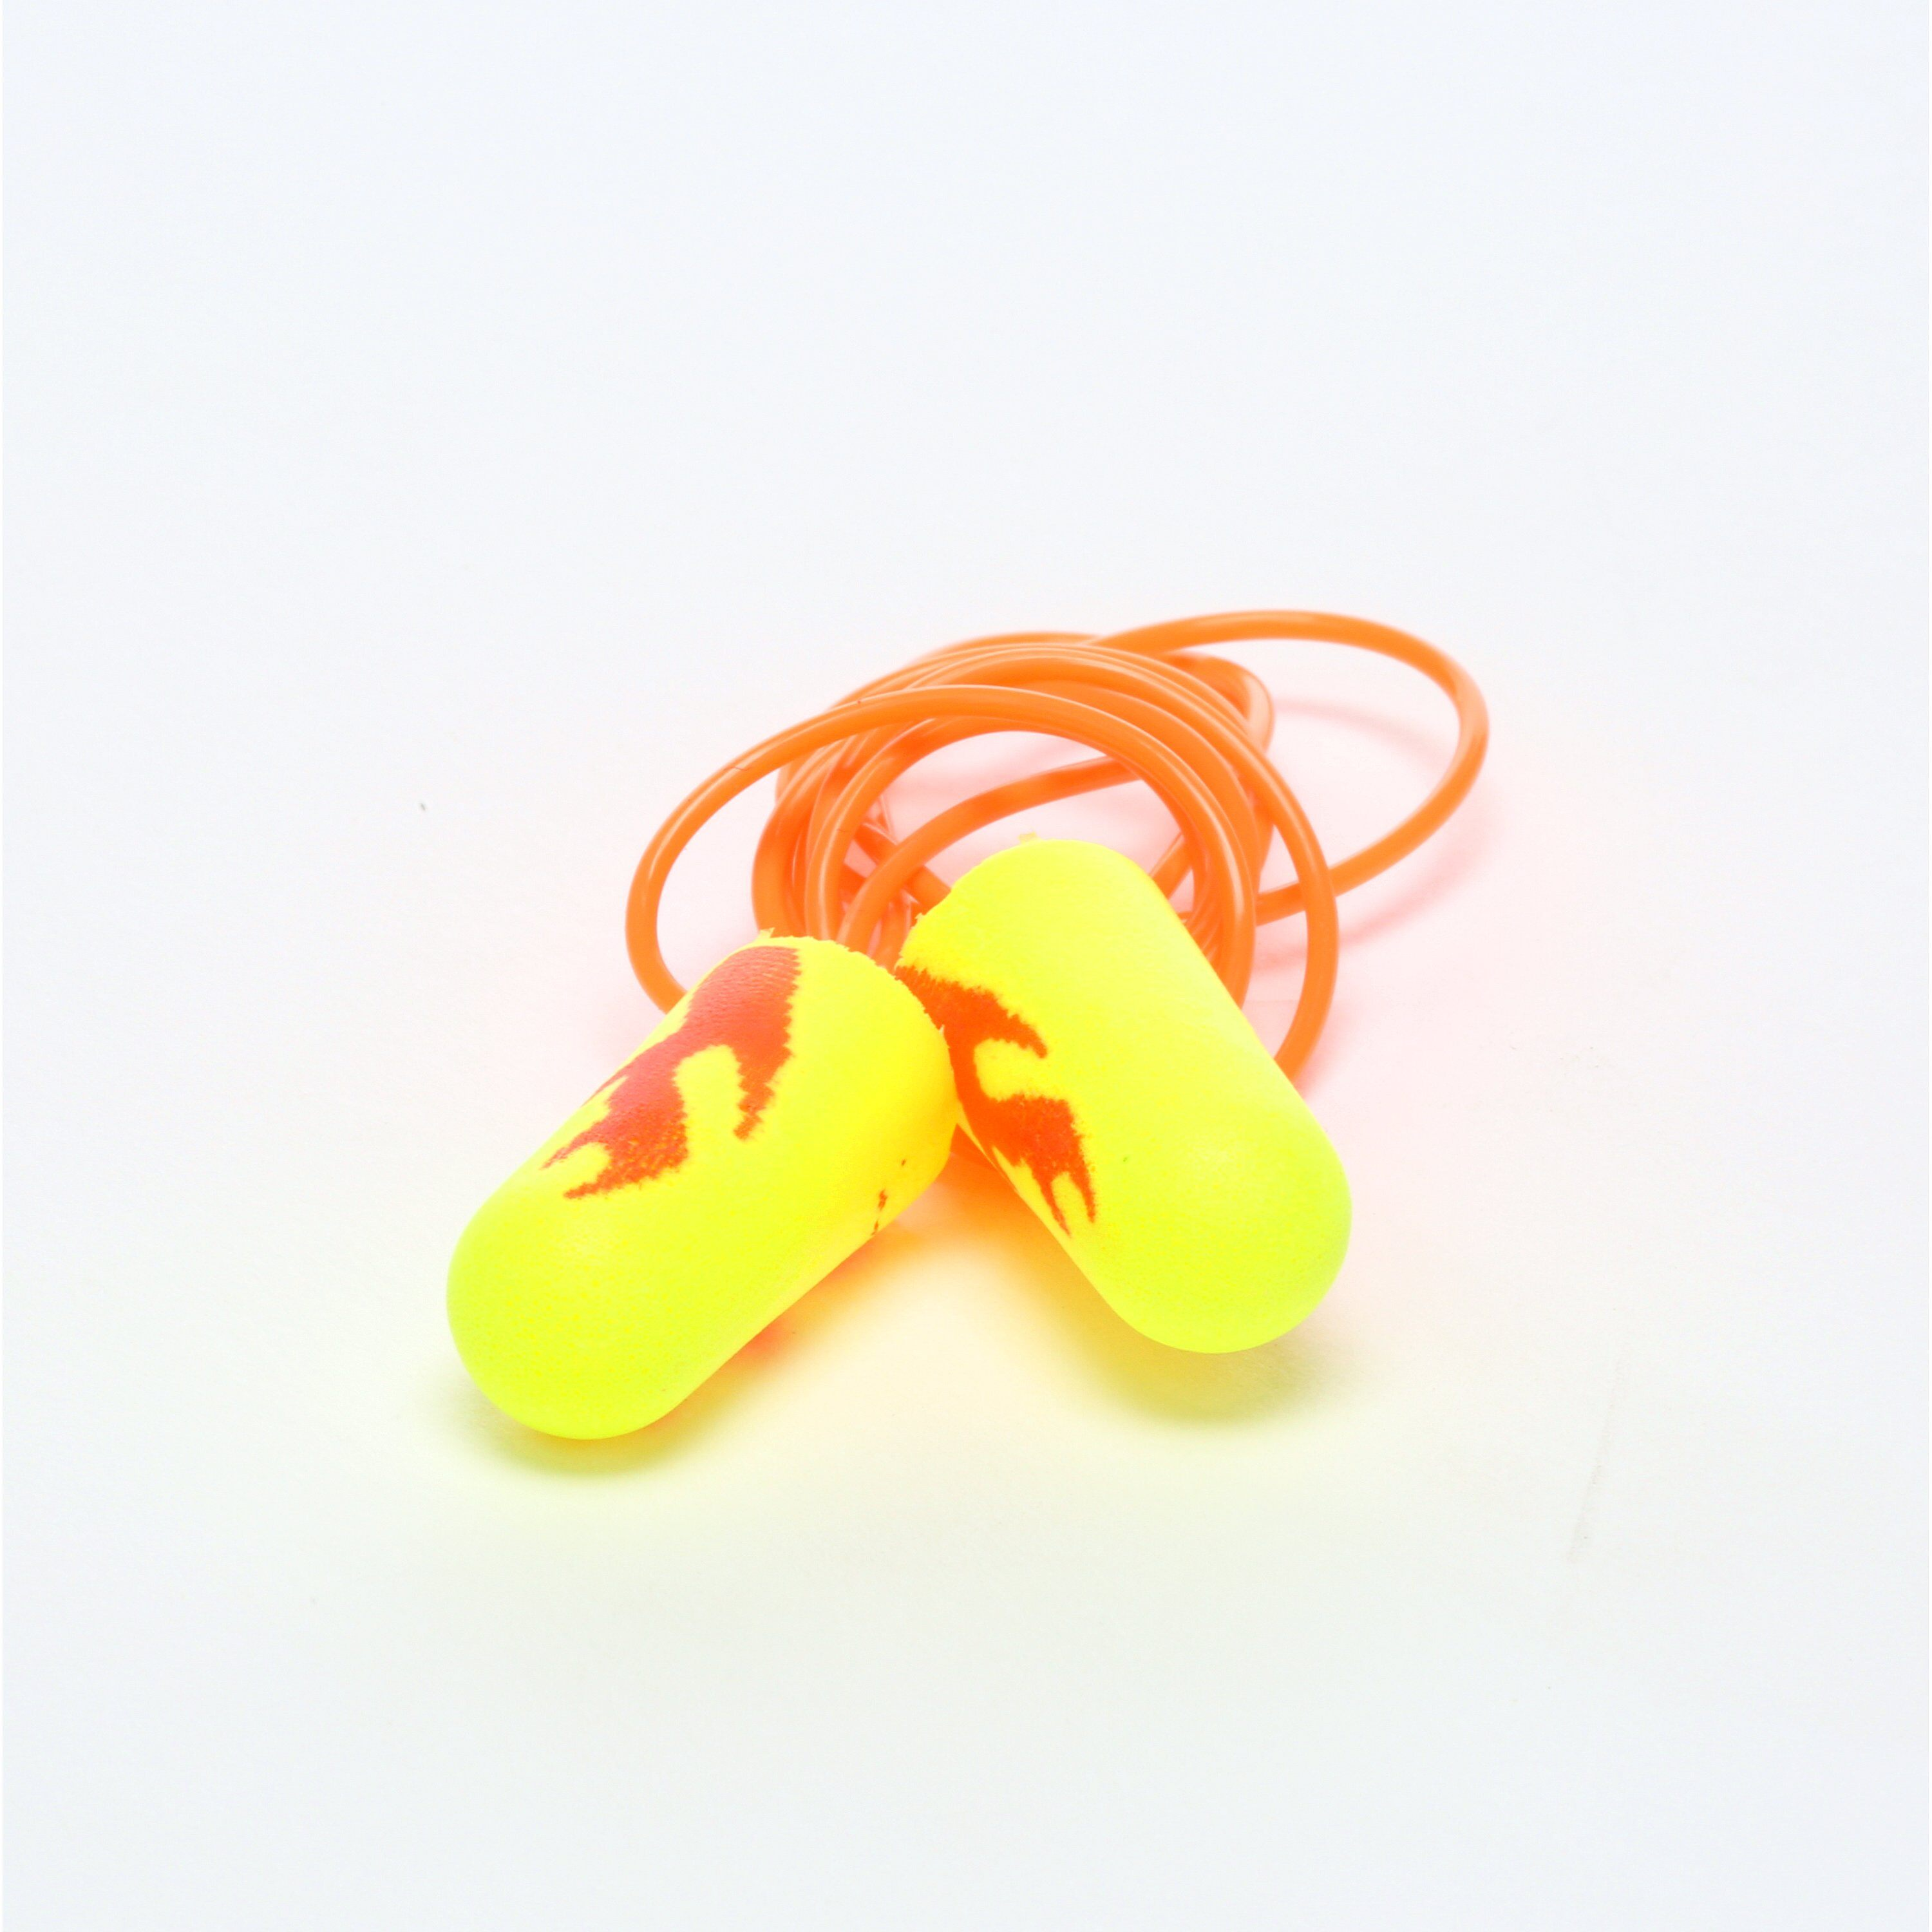 E-A-Rsoft™ Yellow Neon Blasts™ 311-1252 Corded Ear Plug, 33 dB Noise Reduction, Tapered Shape, ANSI S3.19-1974, Disposable